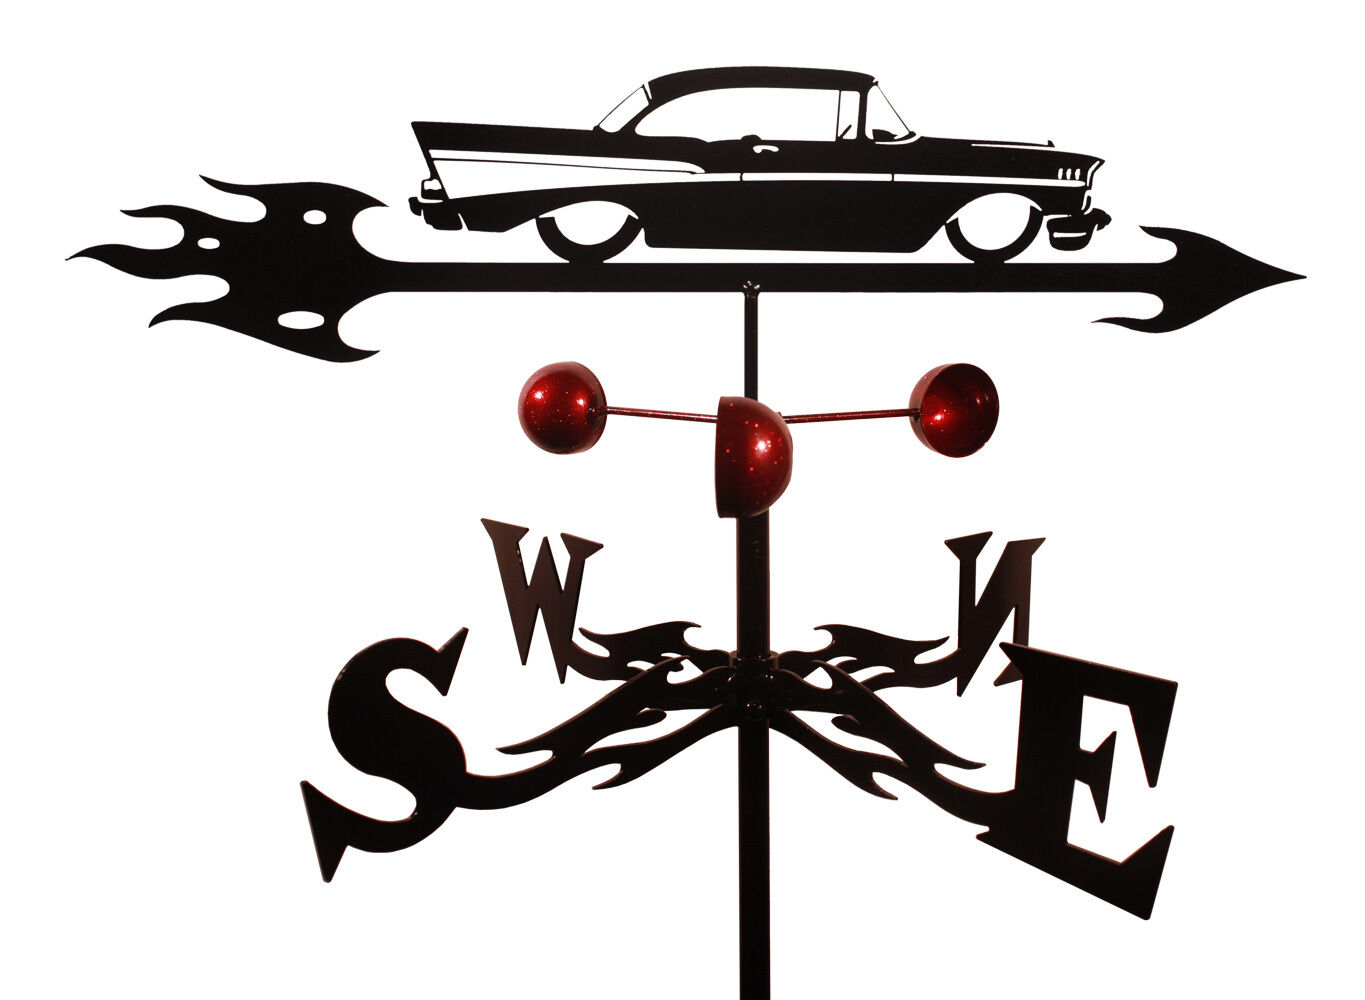 57 Chevrolet Weathervane (Roof Mounting Included)